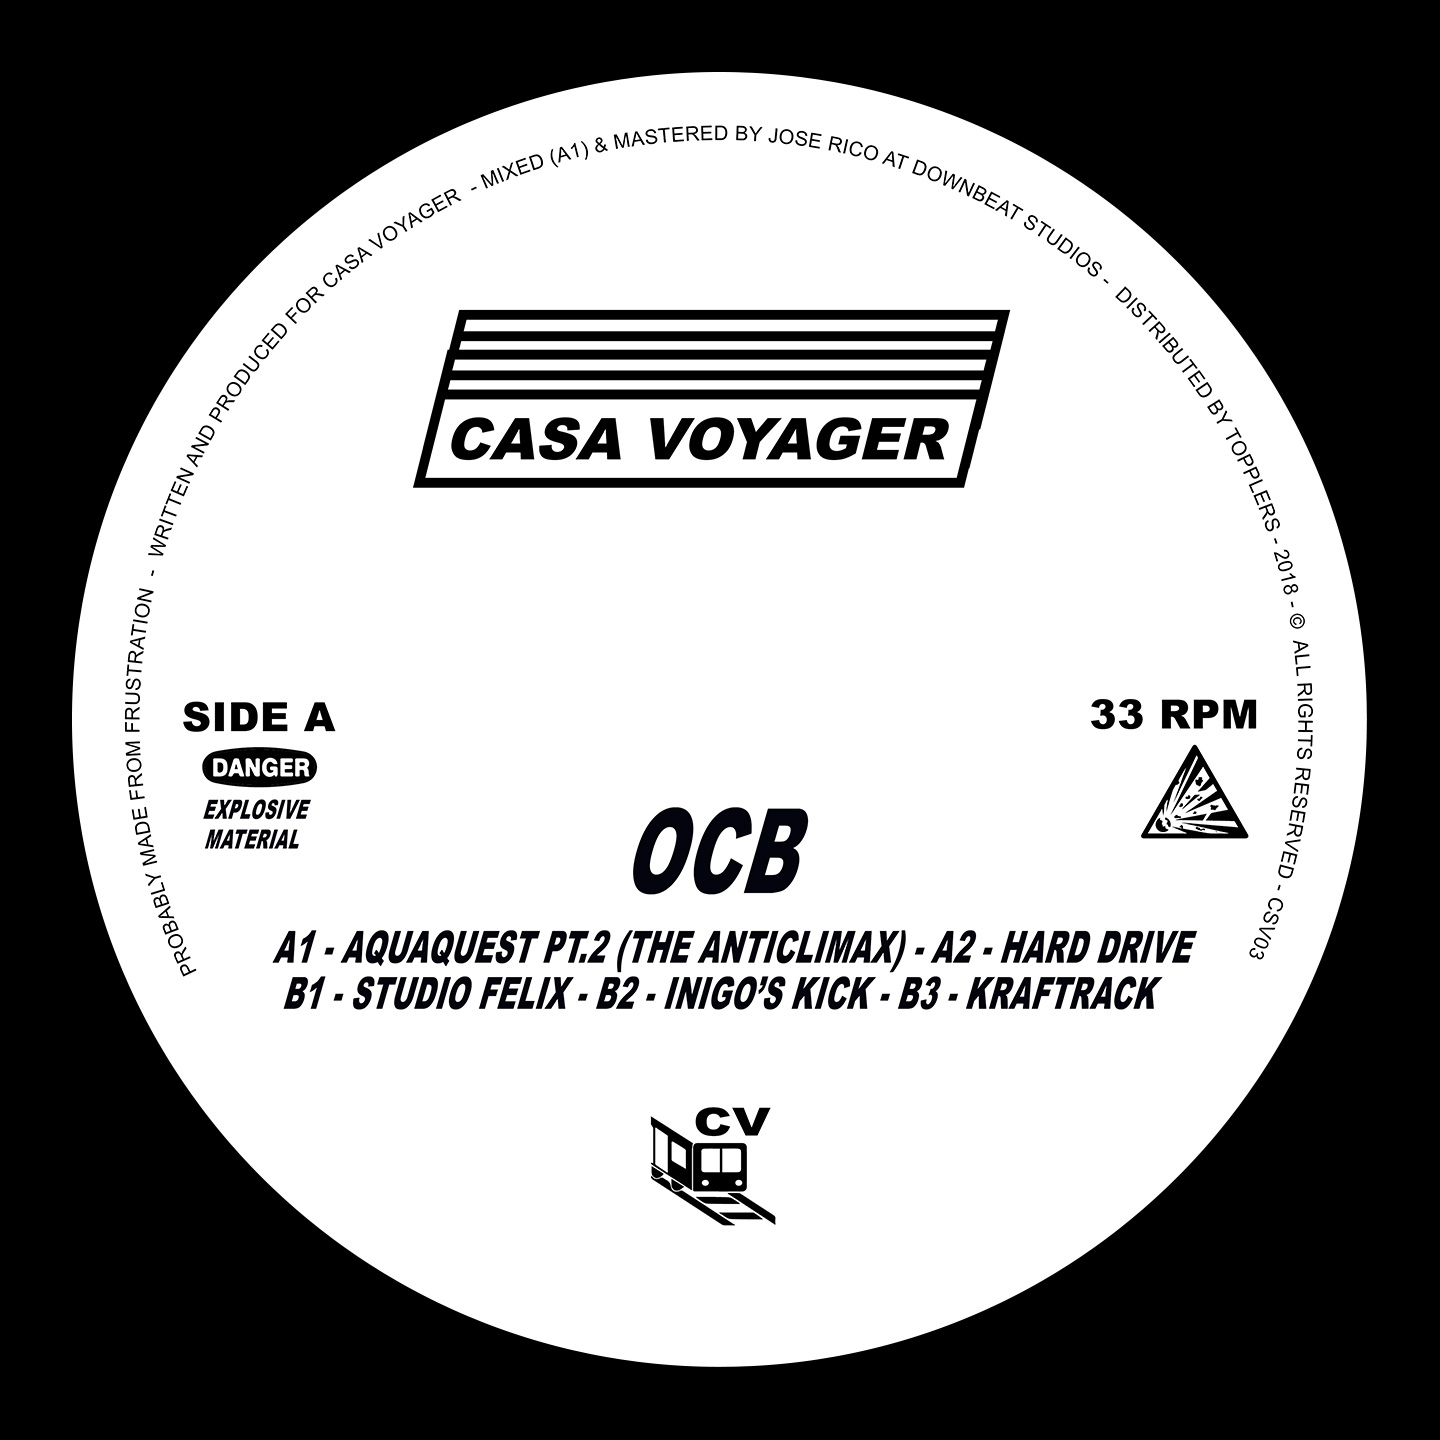 OCB - The Anticlimax